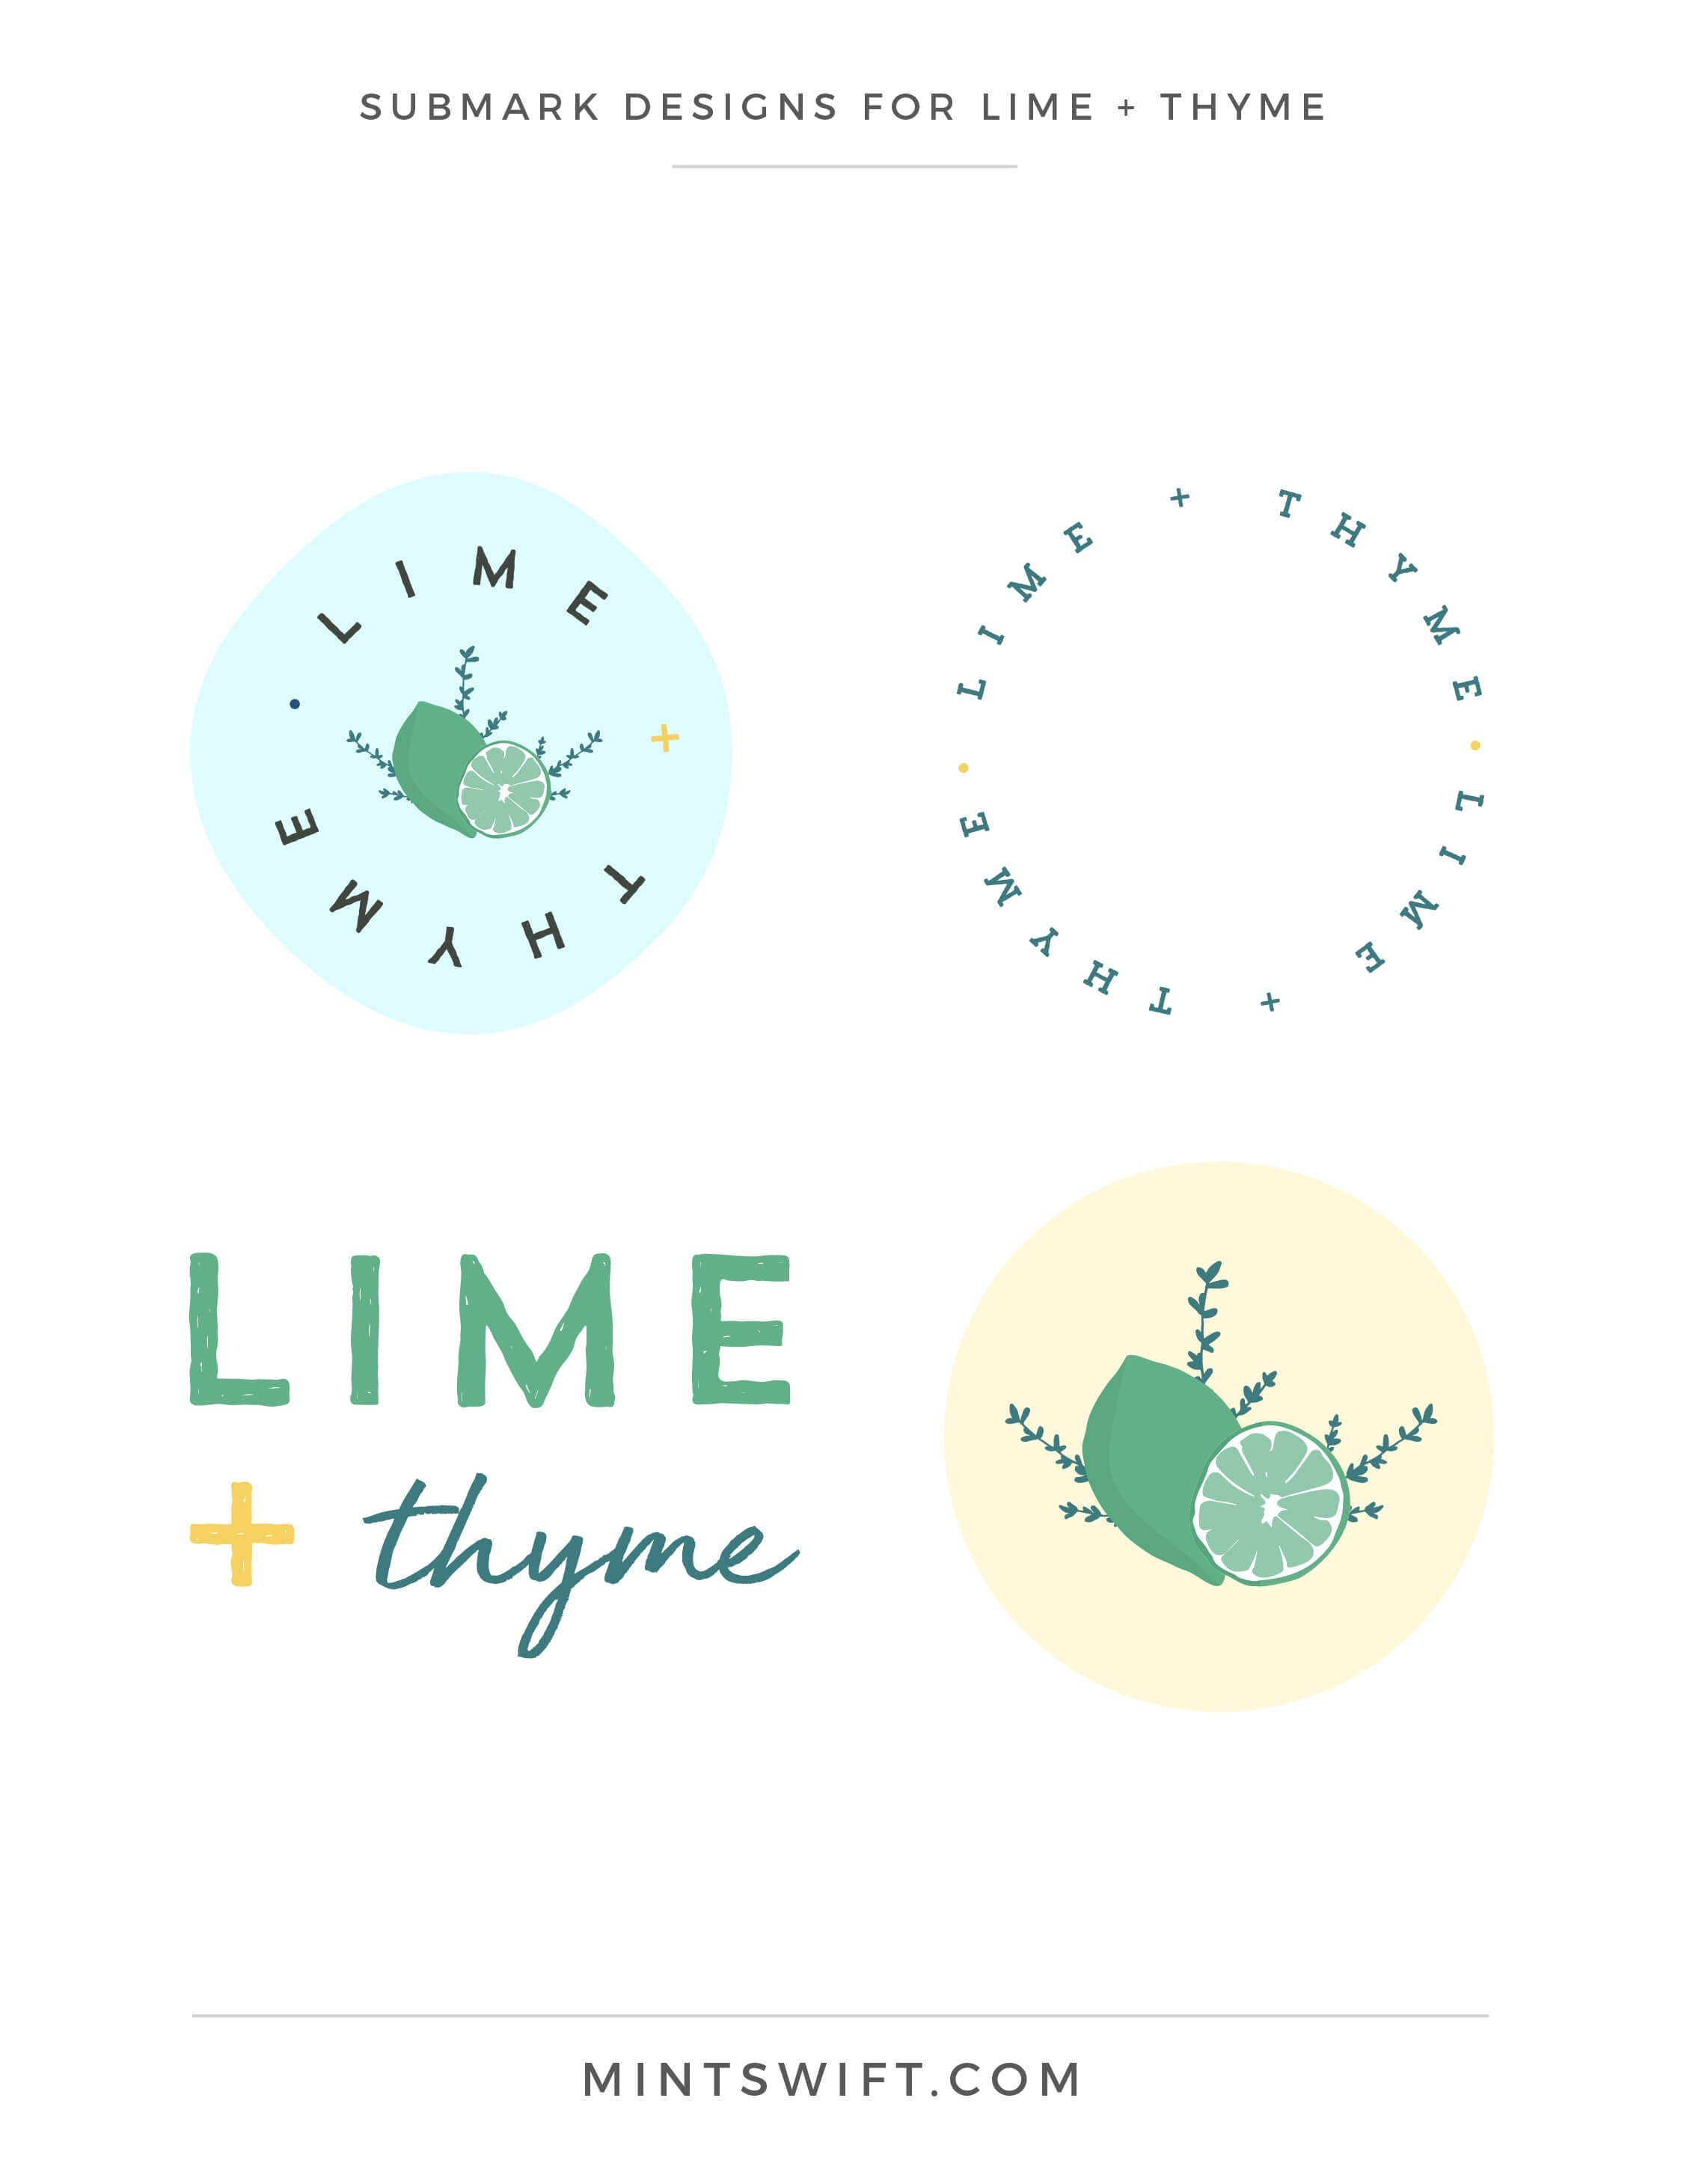 Lime + Thyme - Submark Designs - Brand & Website Design - MintSwift